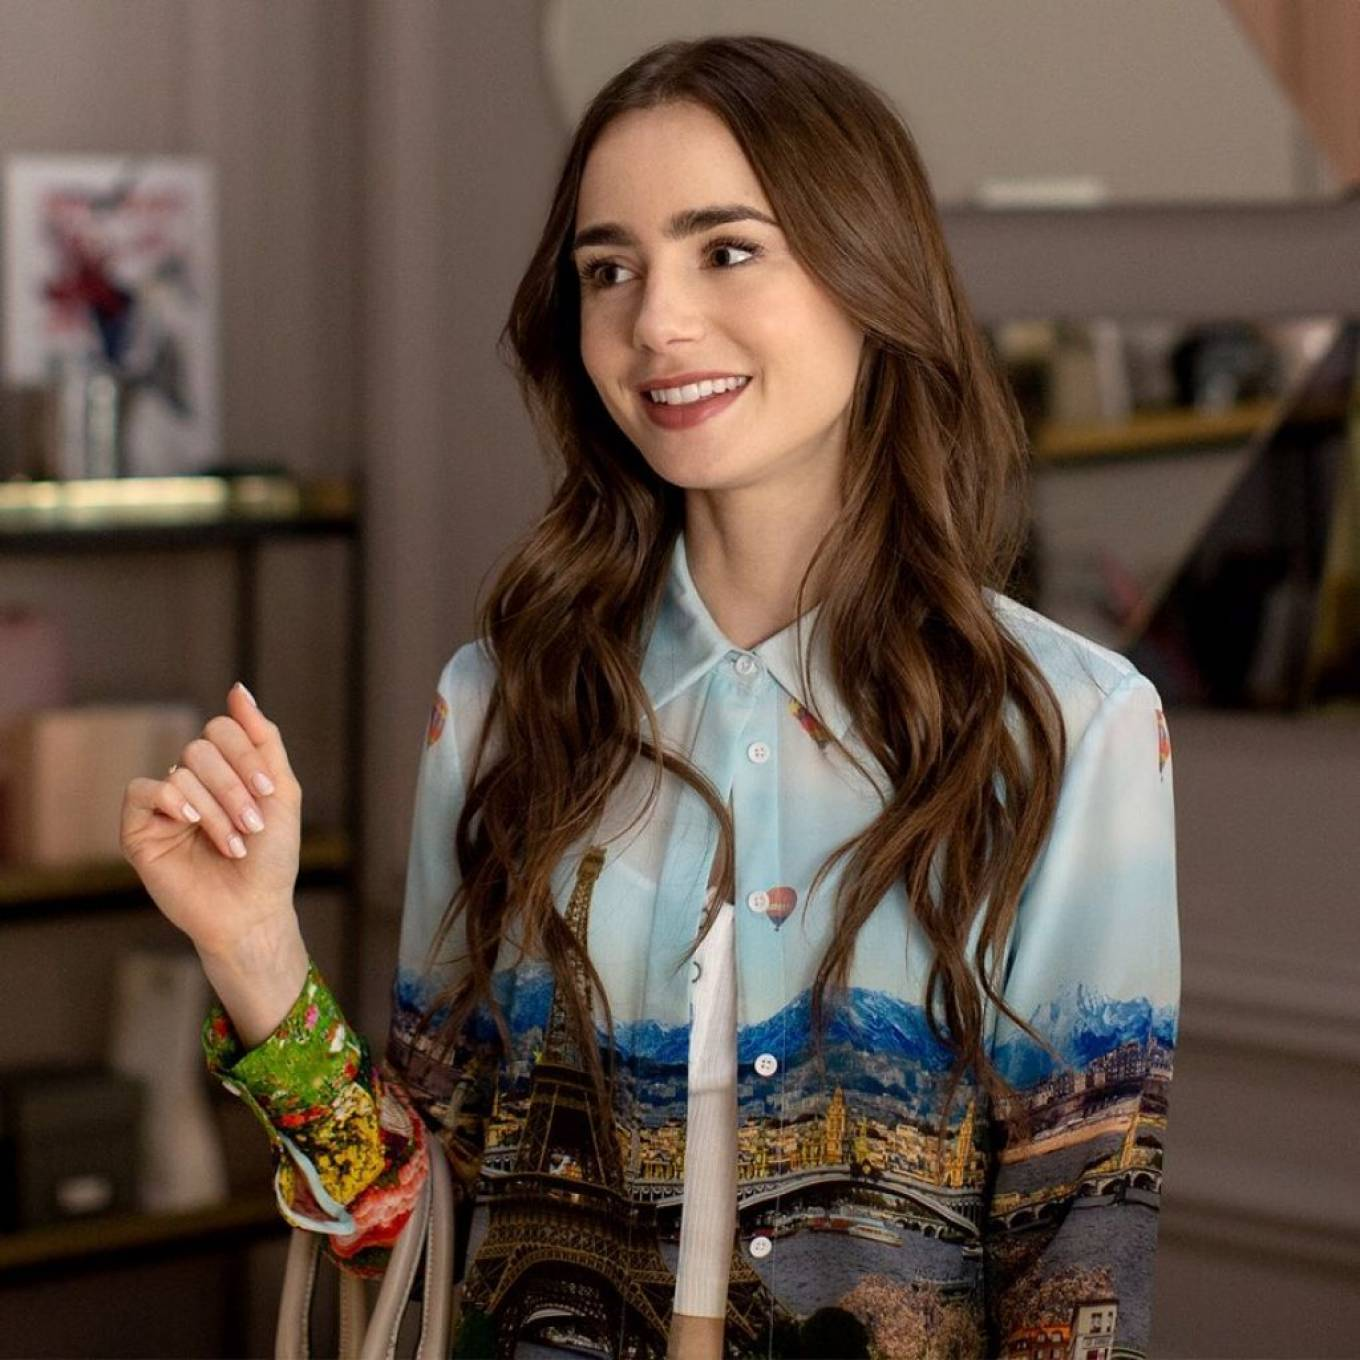 Lily Collins 2020 : Lily Collins – Emily In Paris Promoshoot 2020-01